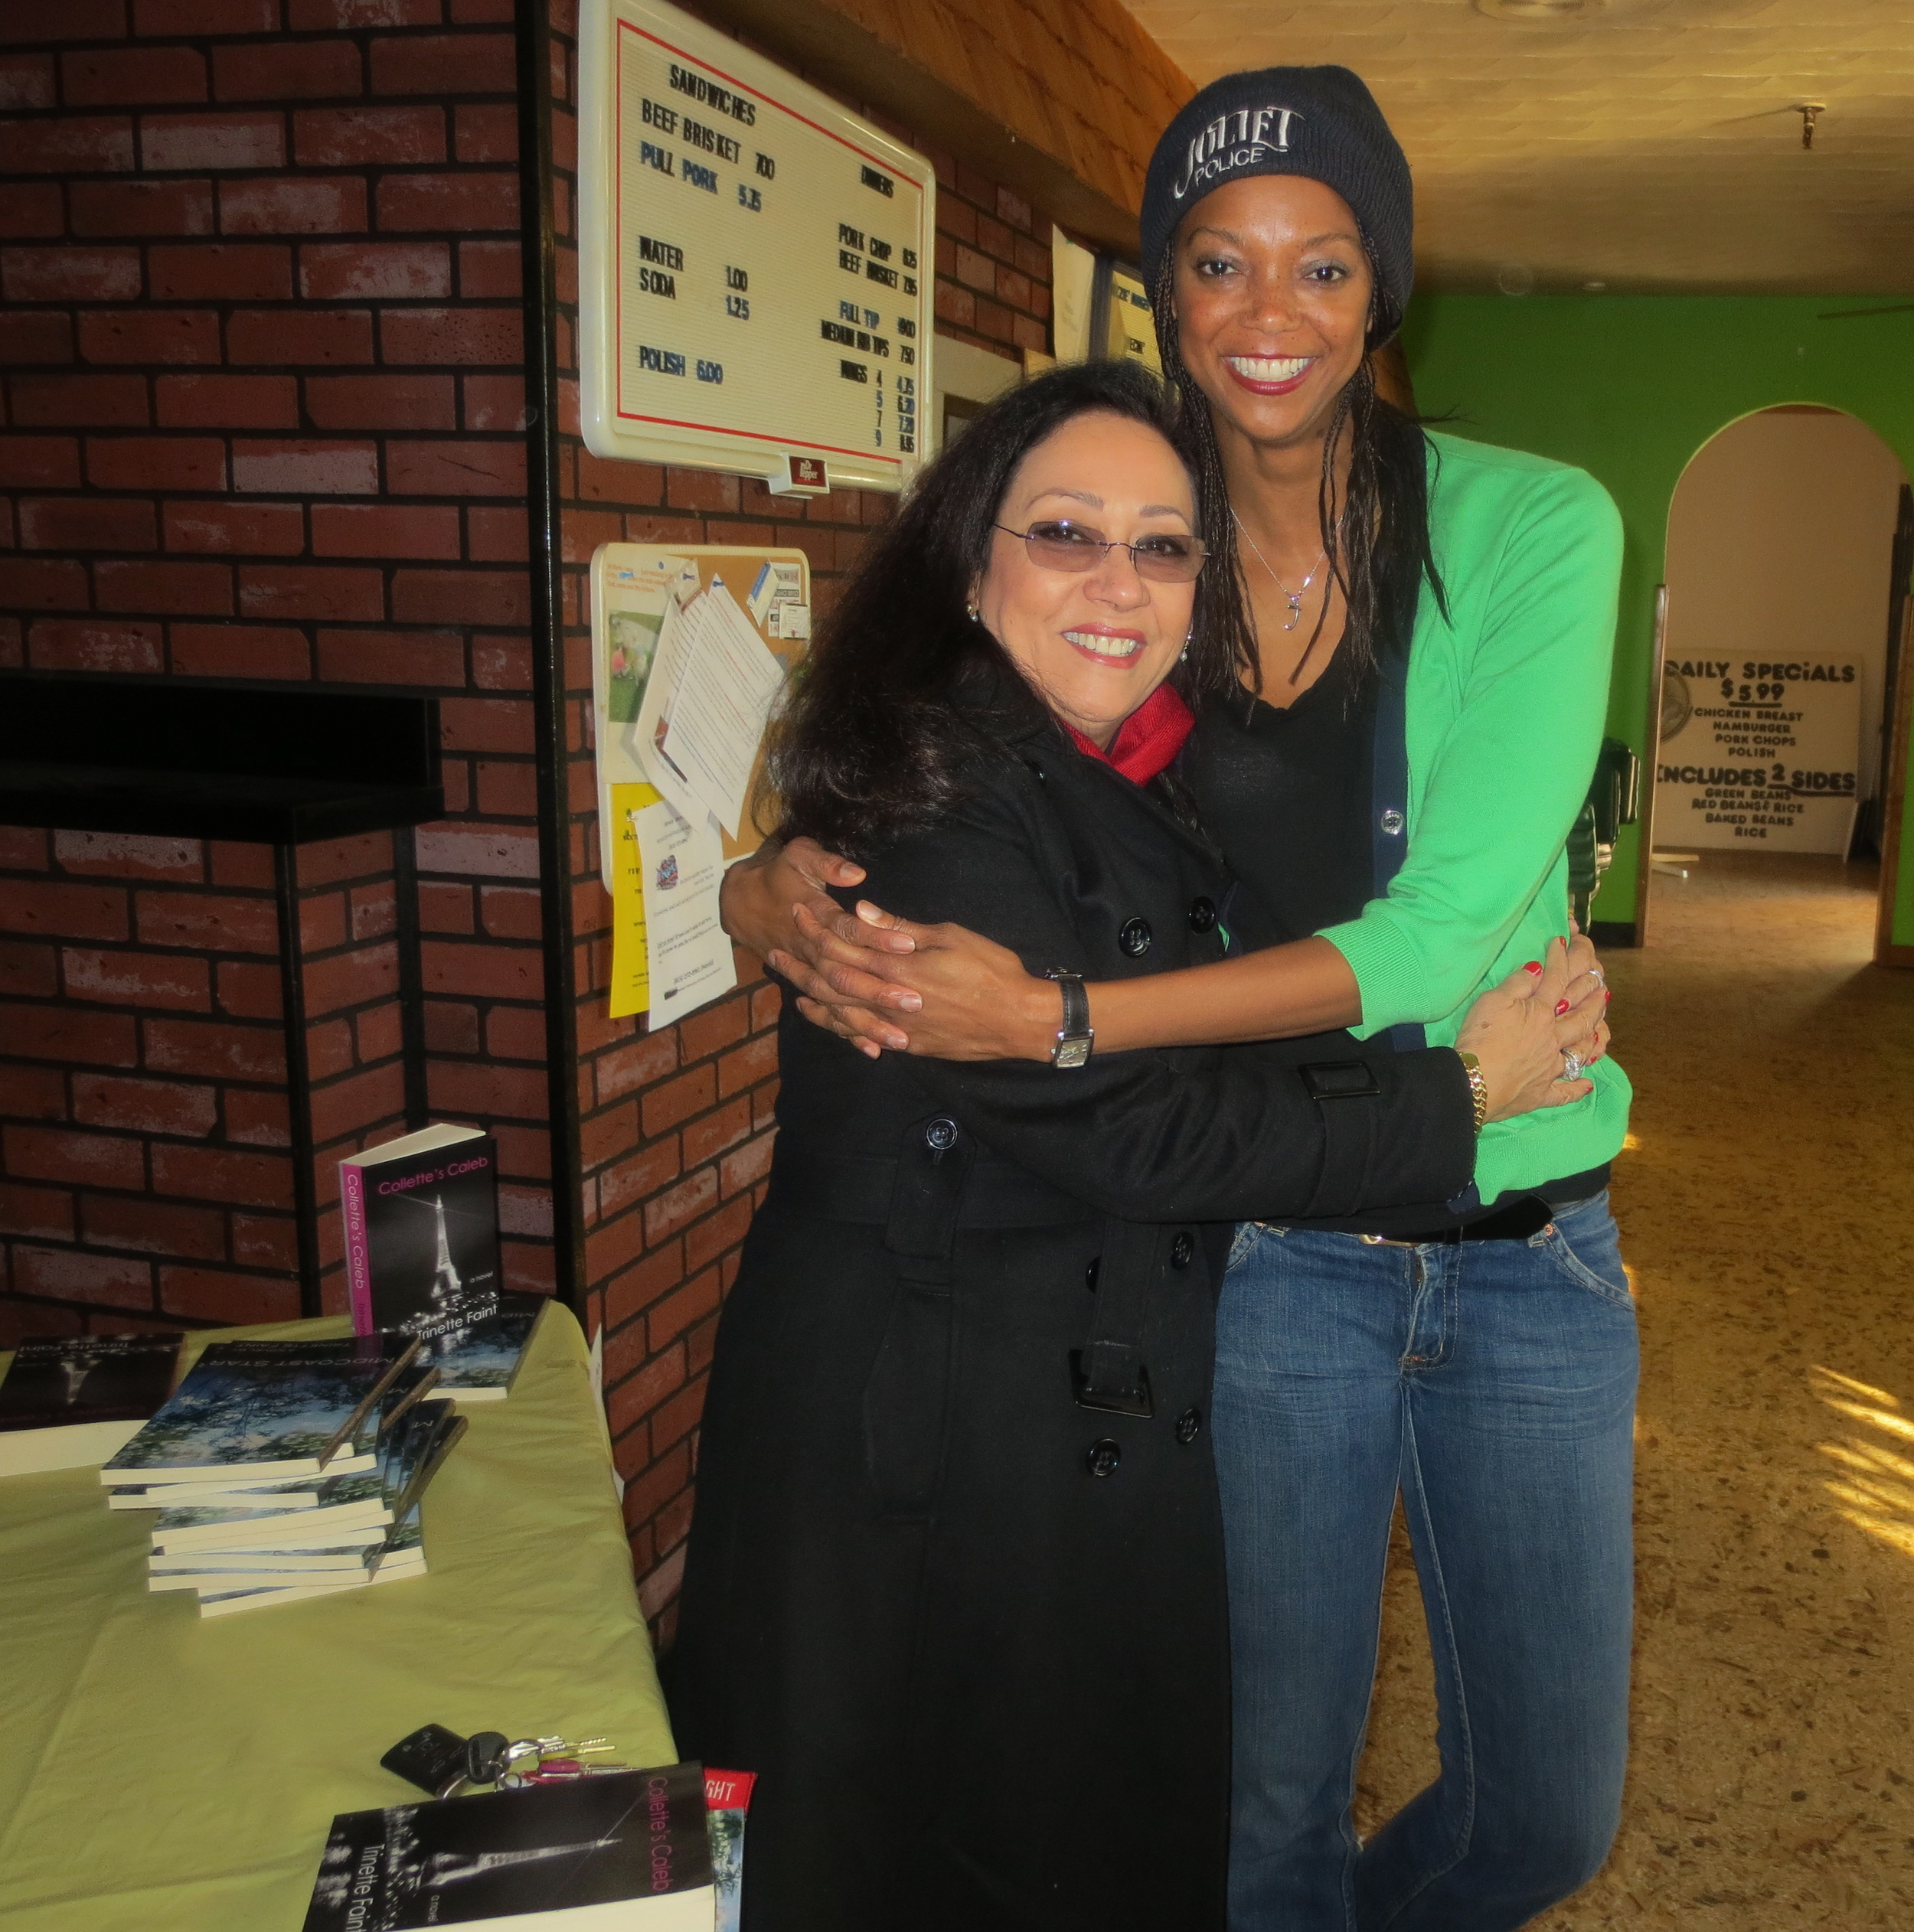 Fashion show producer and writer Mohra Gavankar, who used to hire me for runway shows back in my day, showed her love.